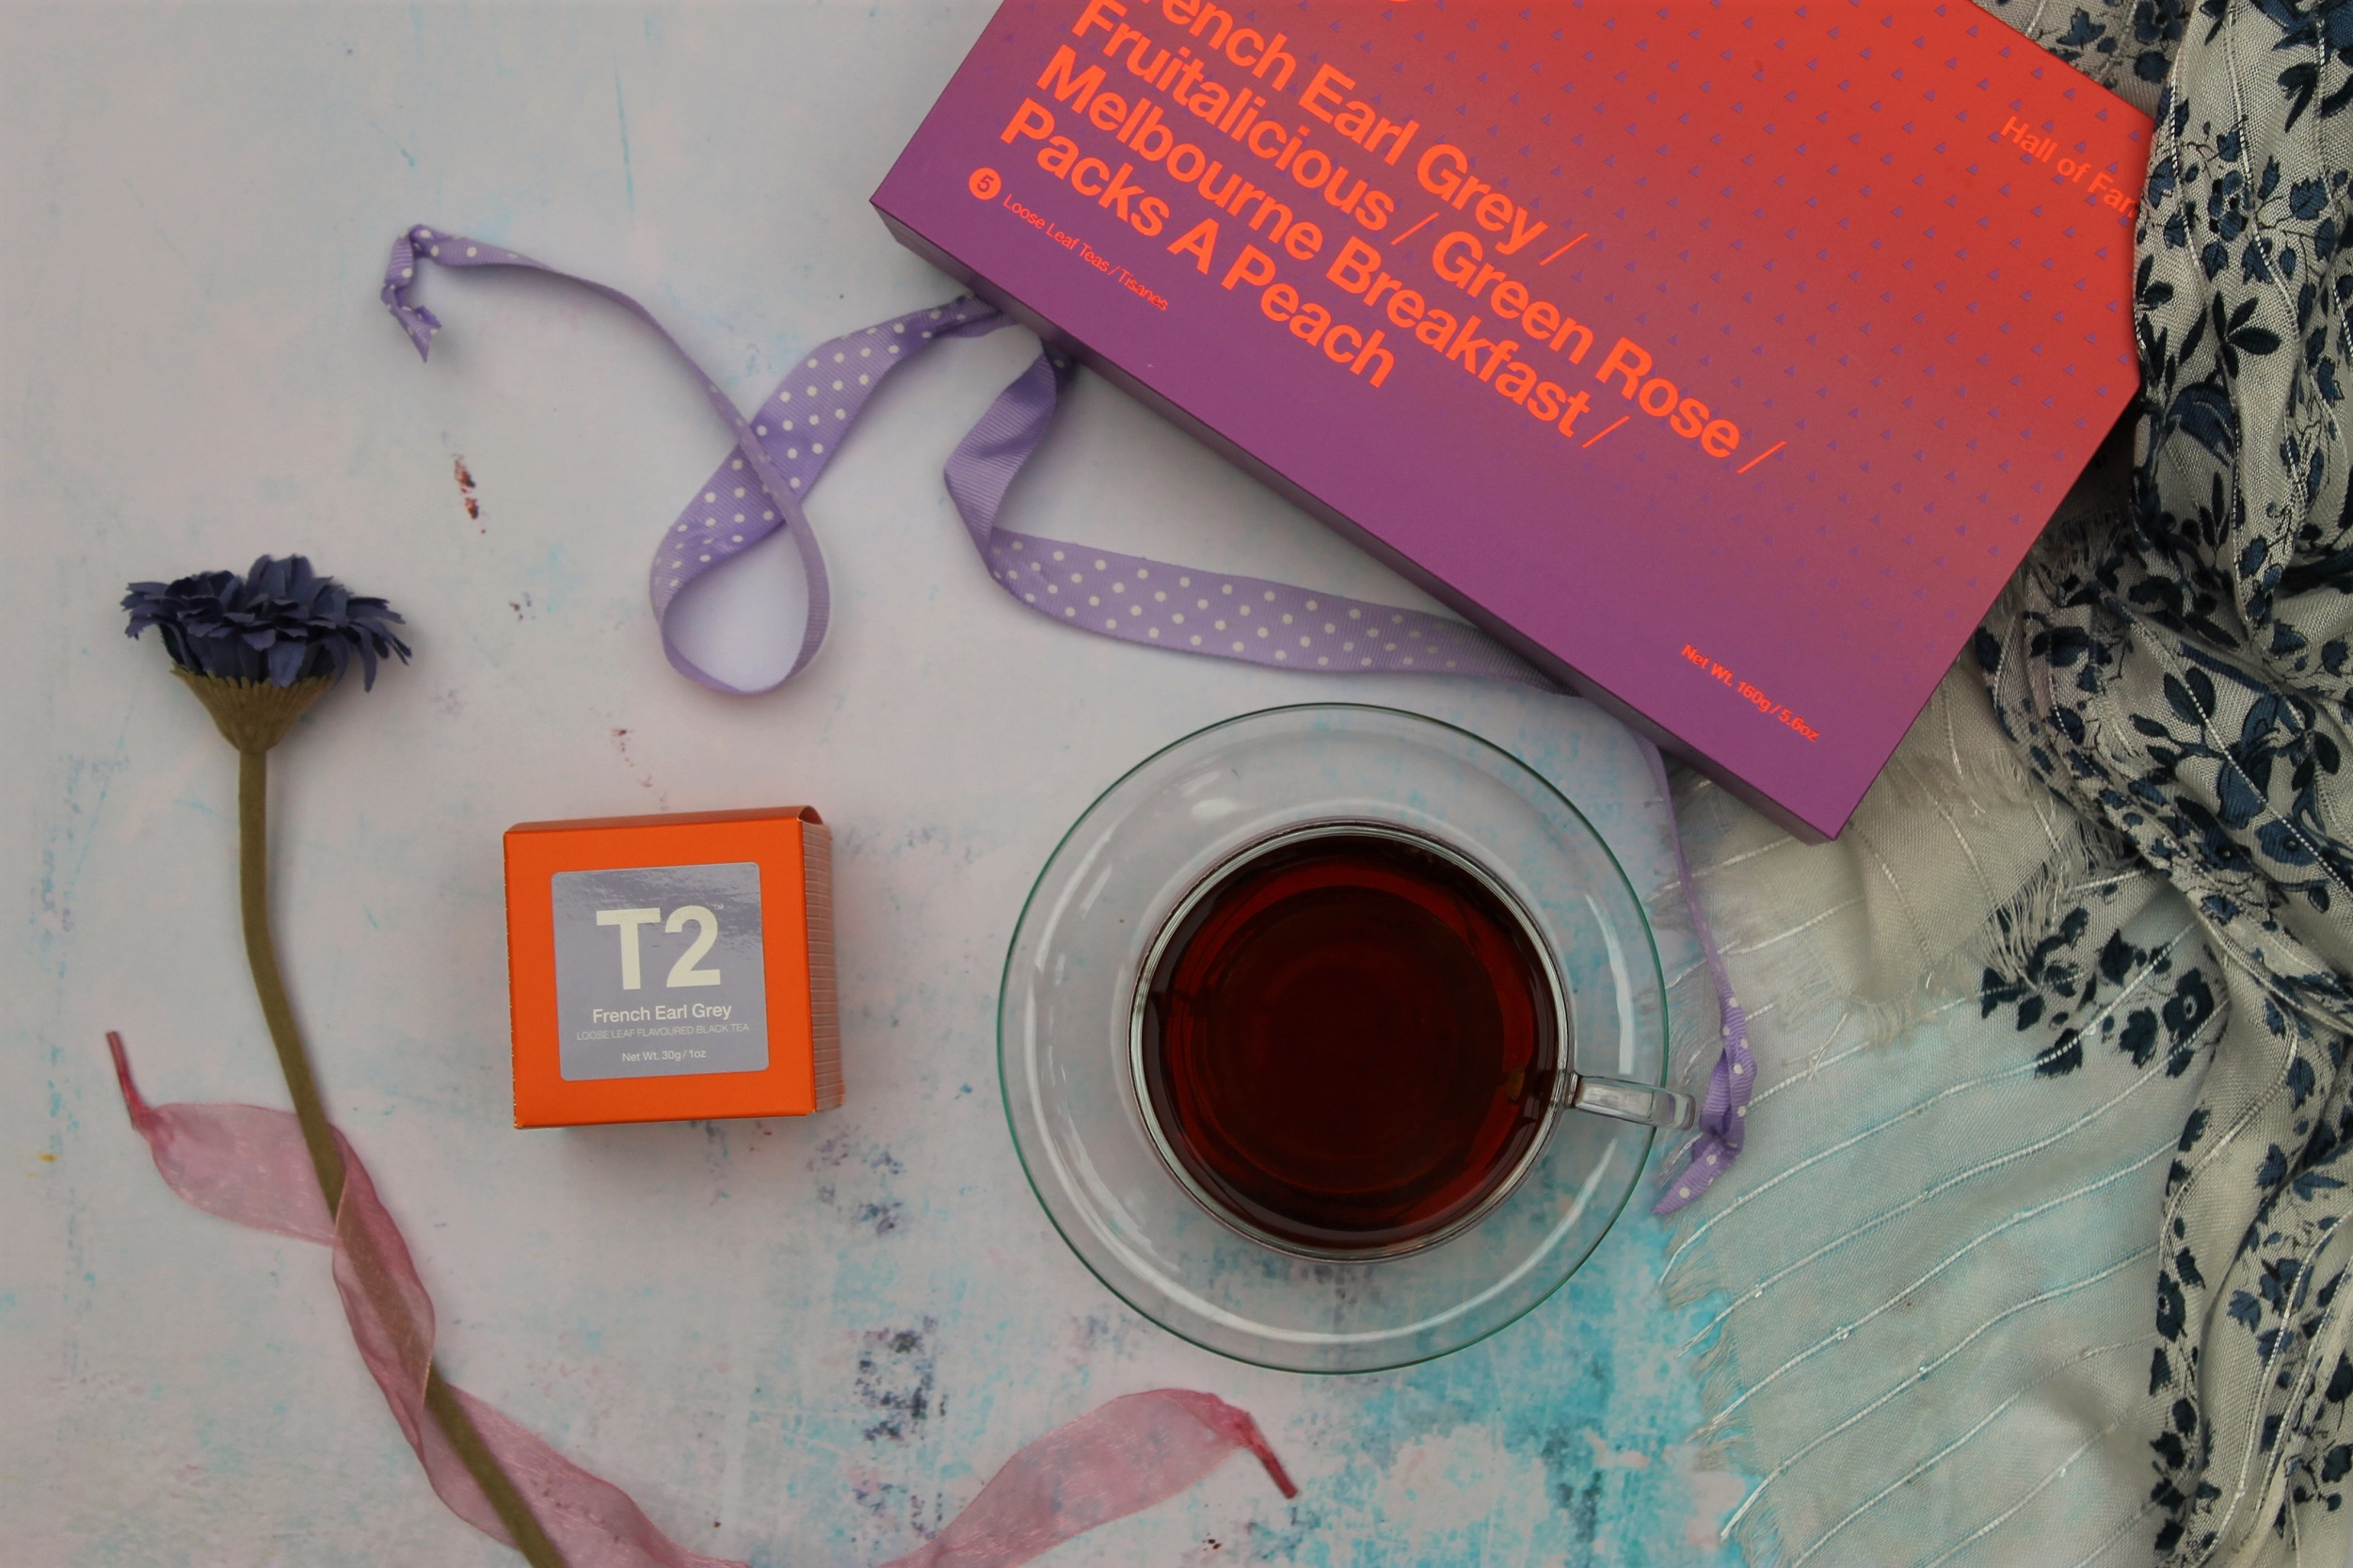 T2 French Earl Grey Tea Review